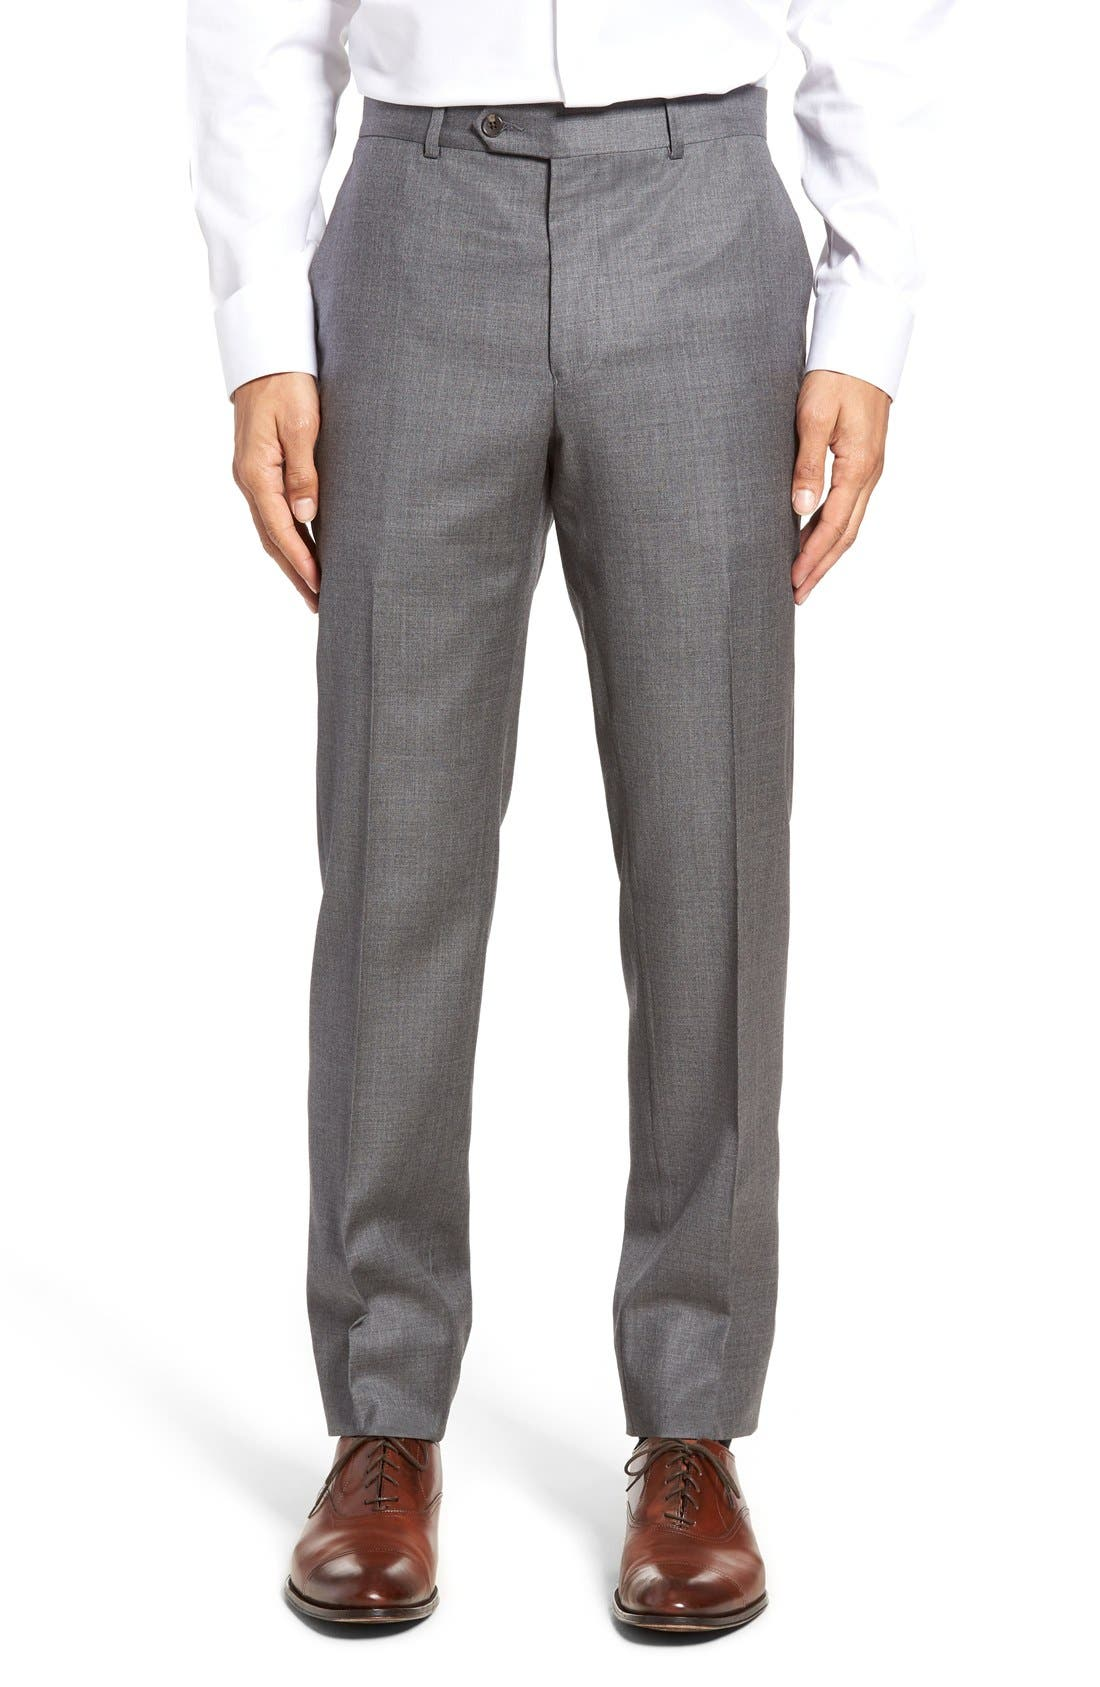 Dagger Flat Front Solid Wool Trousers,                             Main thumbnail 1, color,                             Medium Grey